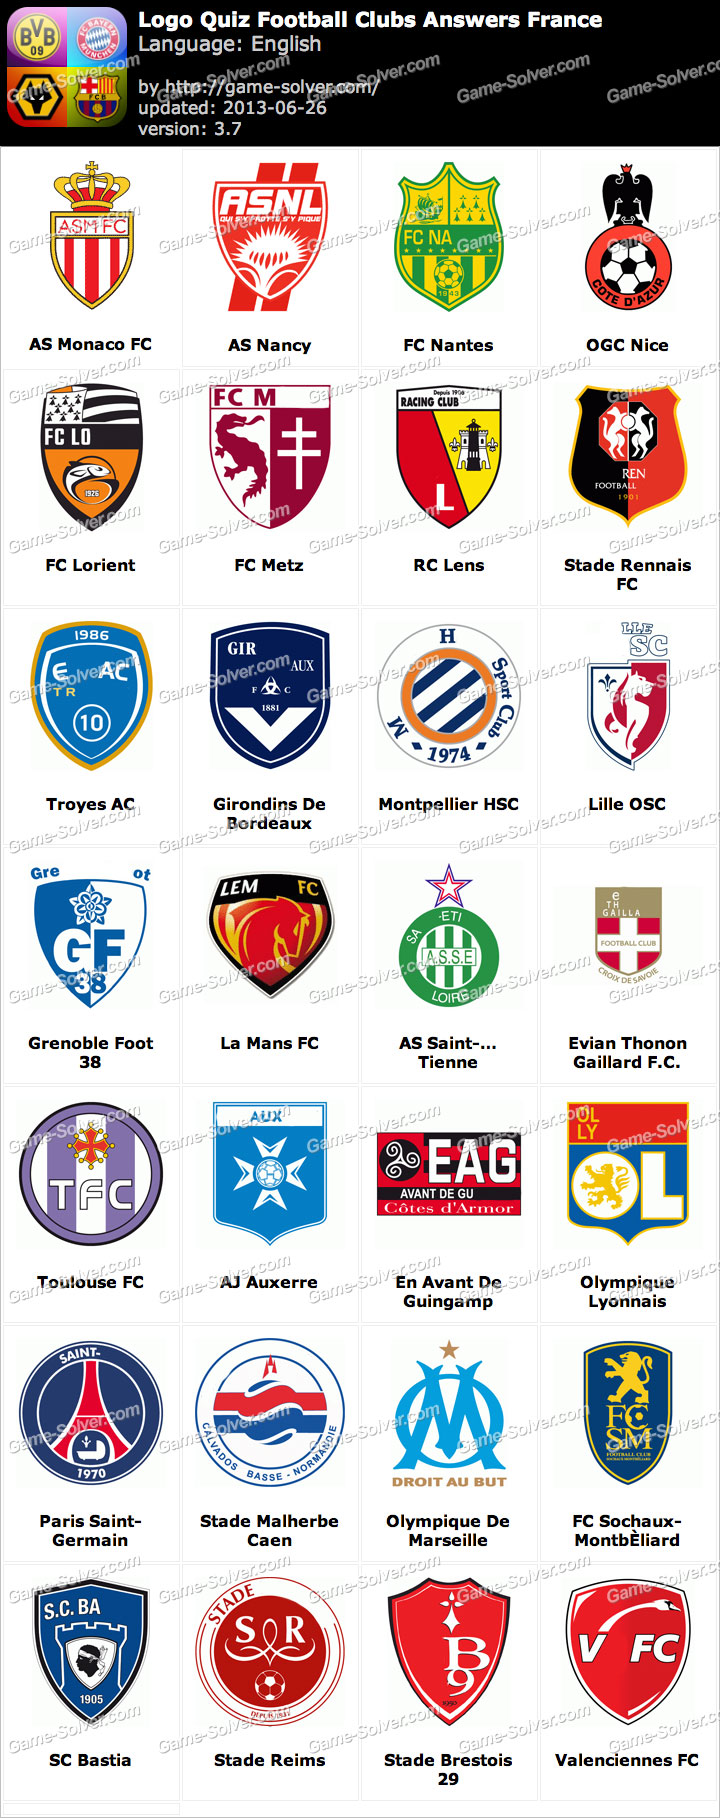 Logo Quiz Football Clubs Answers France